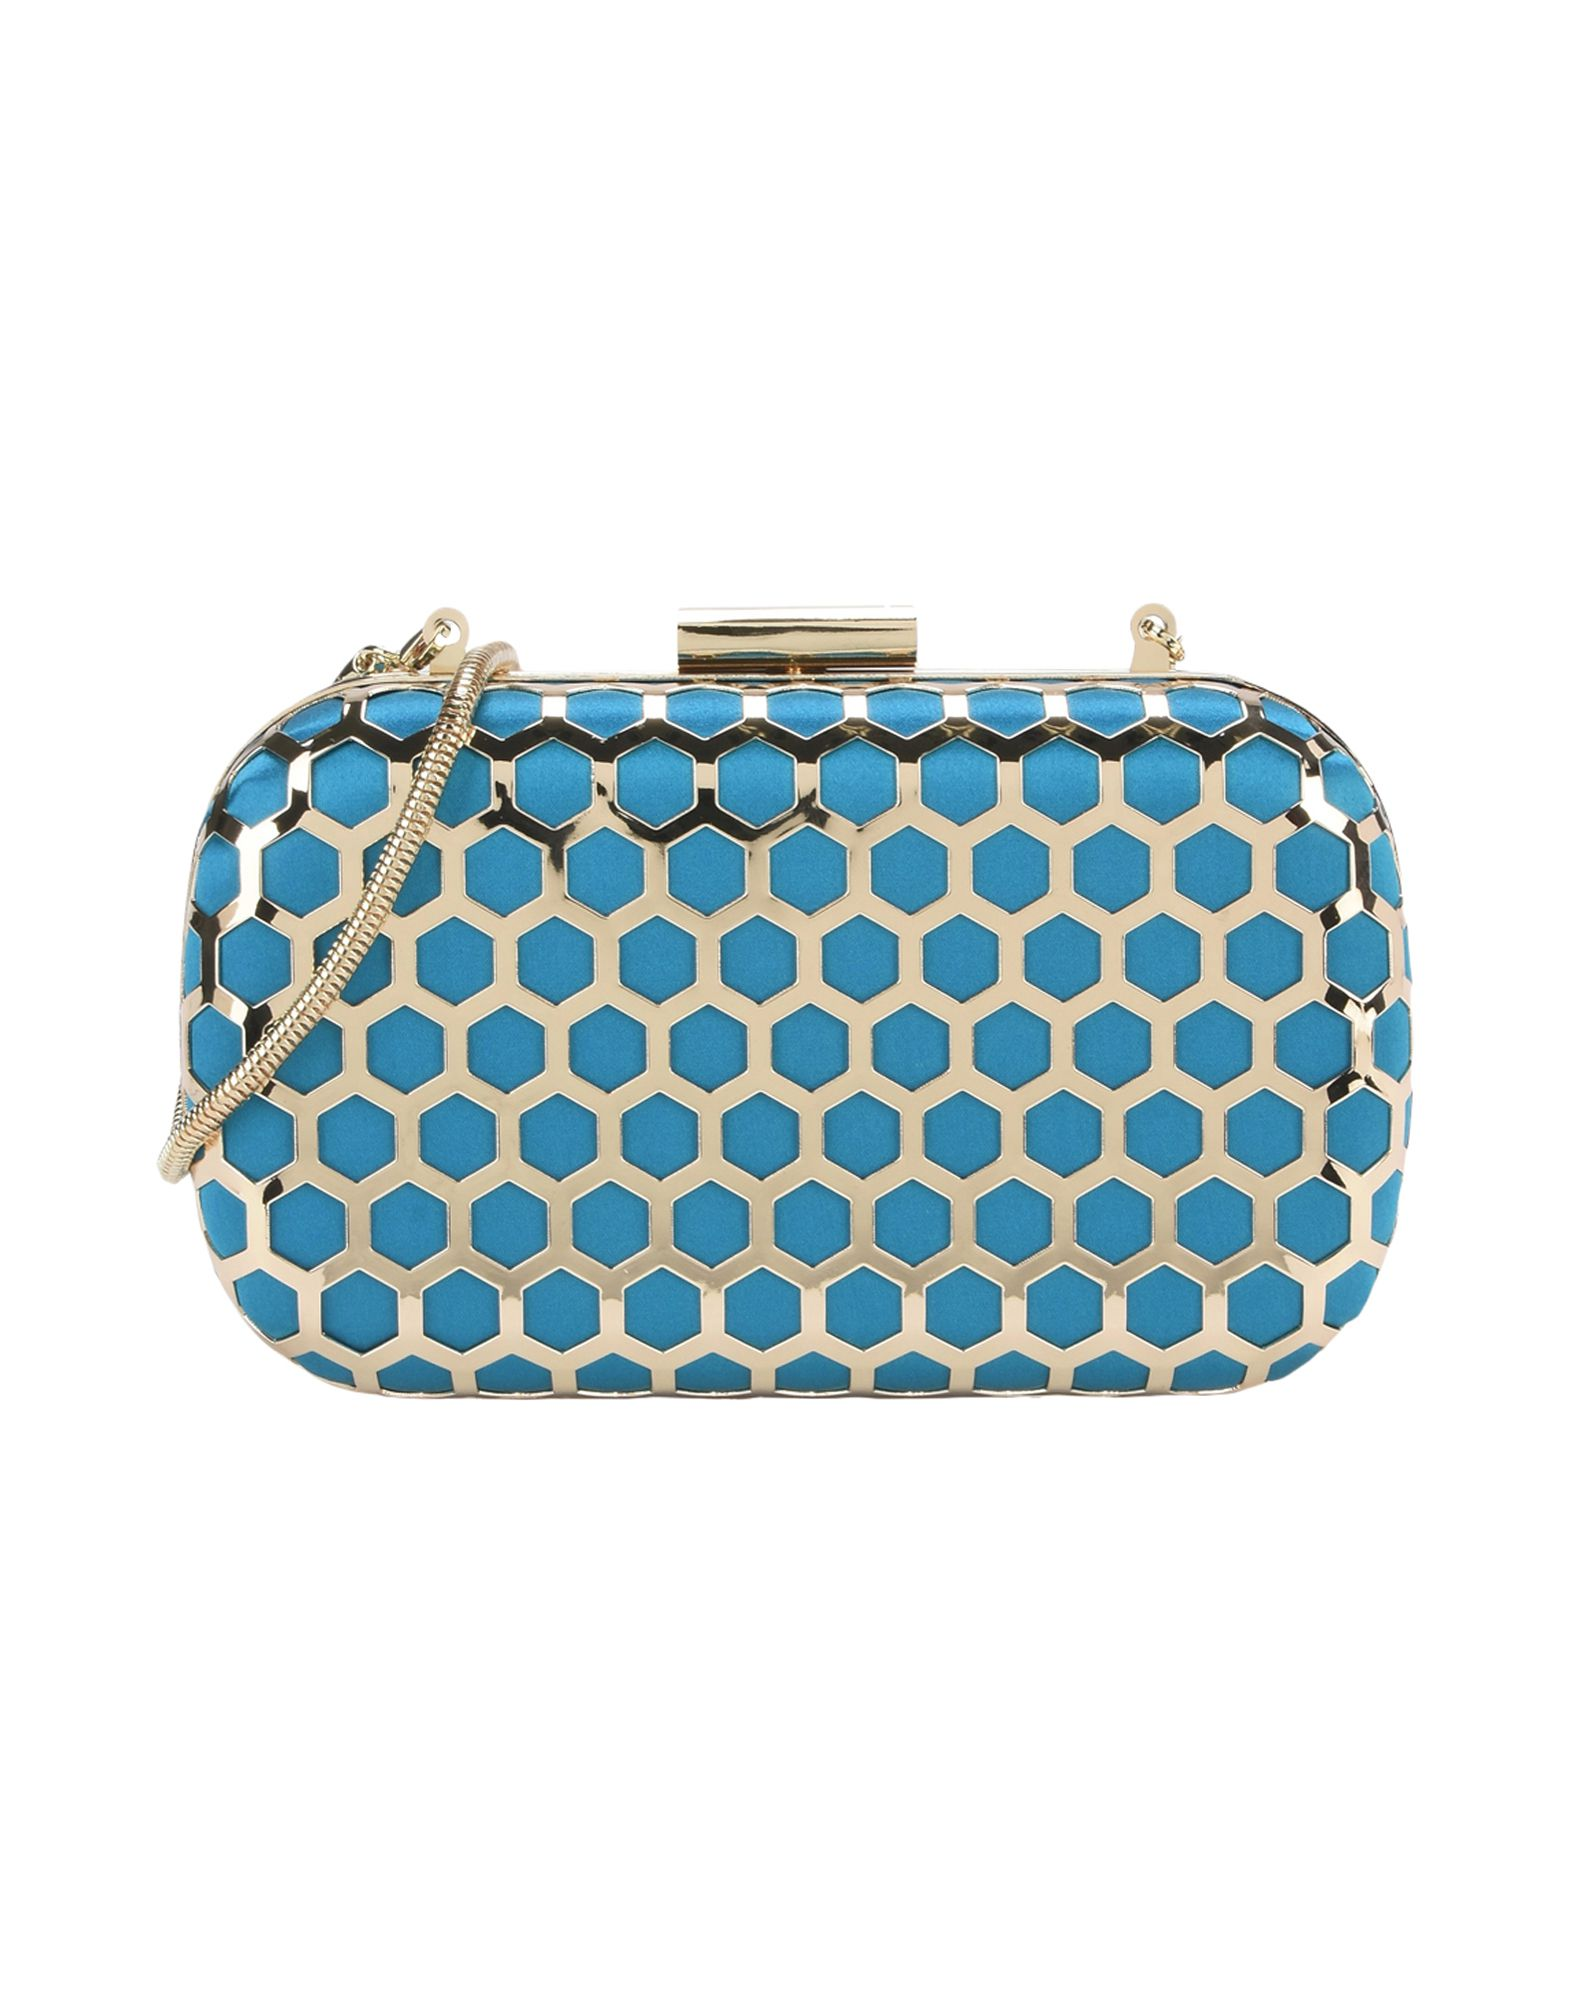 INGE CHRISTOPHER Handbag in Turquoise